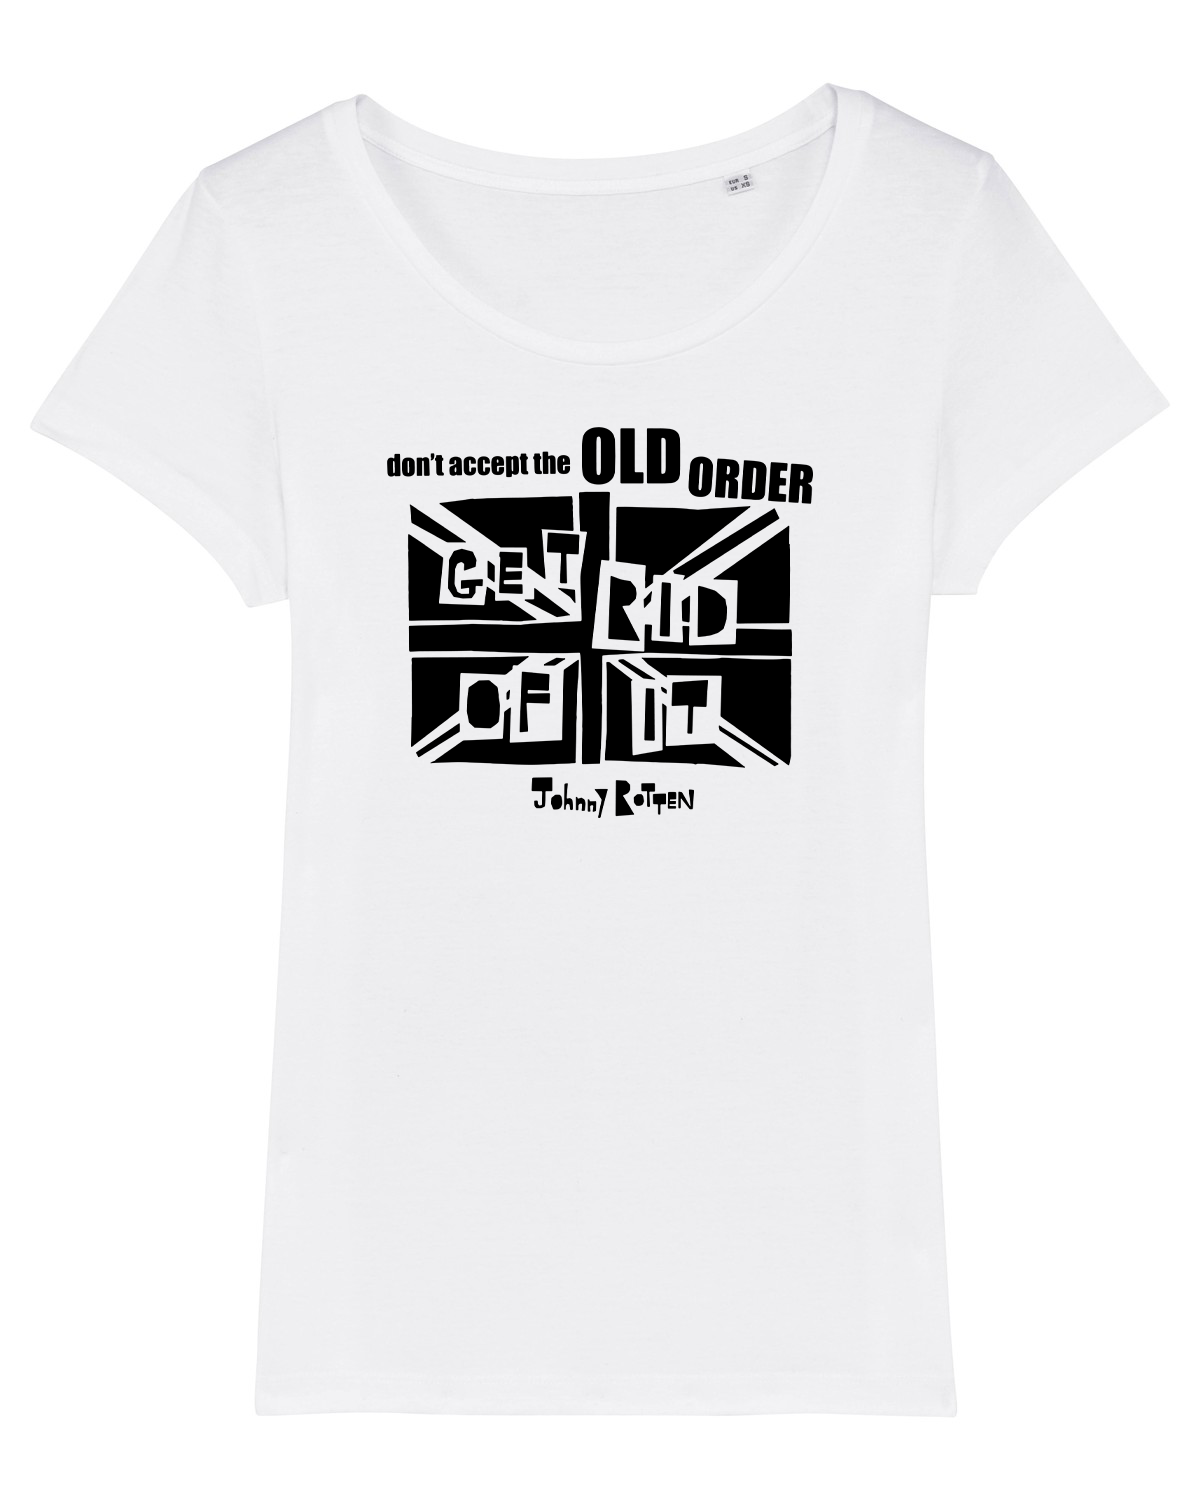 'Don't Accept The Old Order Get Rid Of It' Organic Womens T-shirt